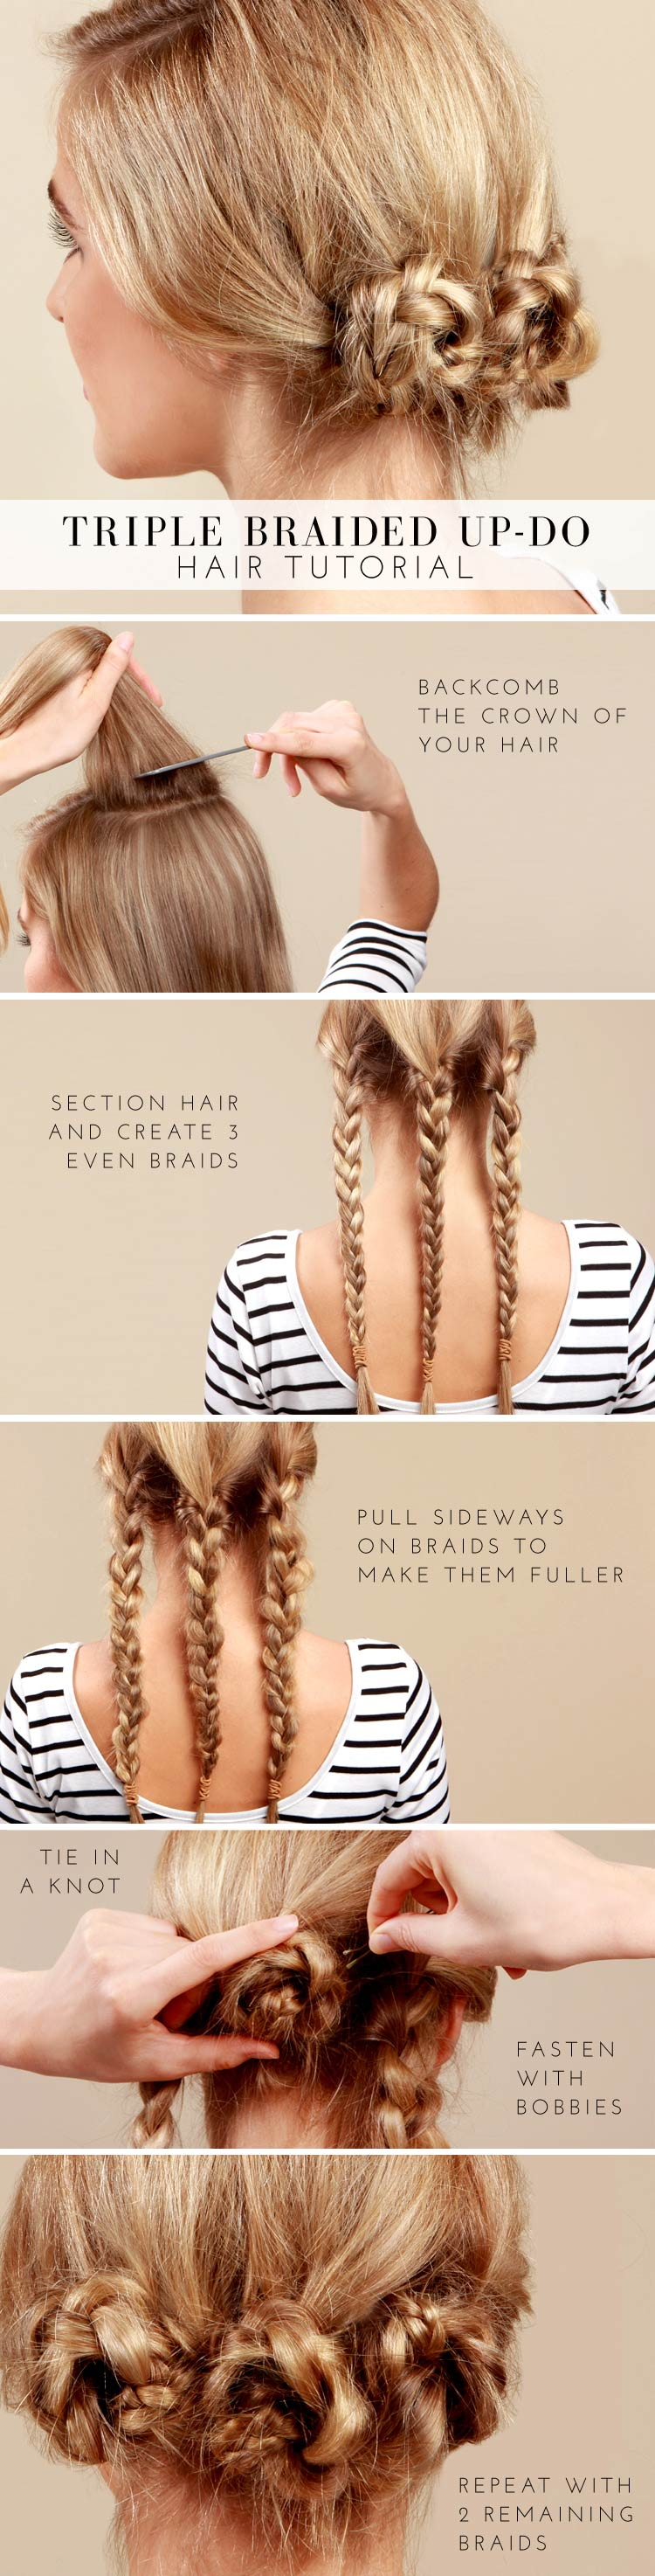 Astounding 30 Cute And Easy Braid Tutorials That Are Perfect For Any Schematic Wiring Diagrams Amerangerunnerswayorg